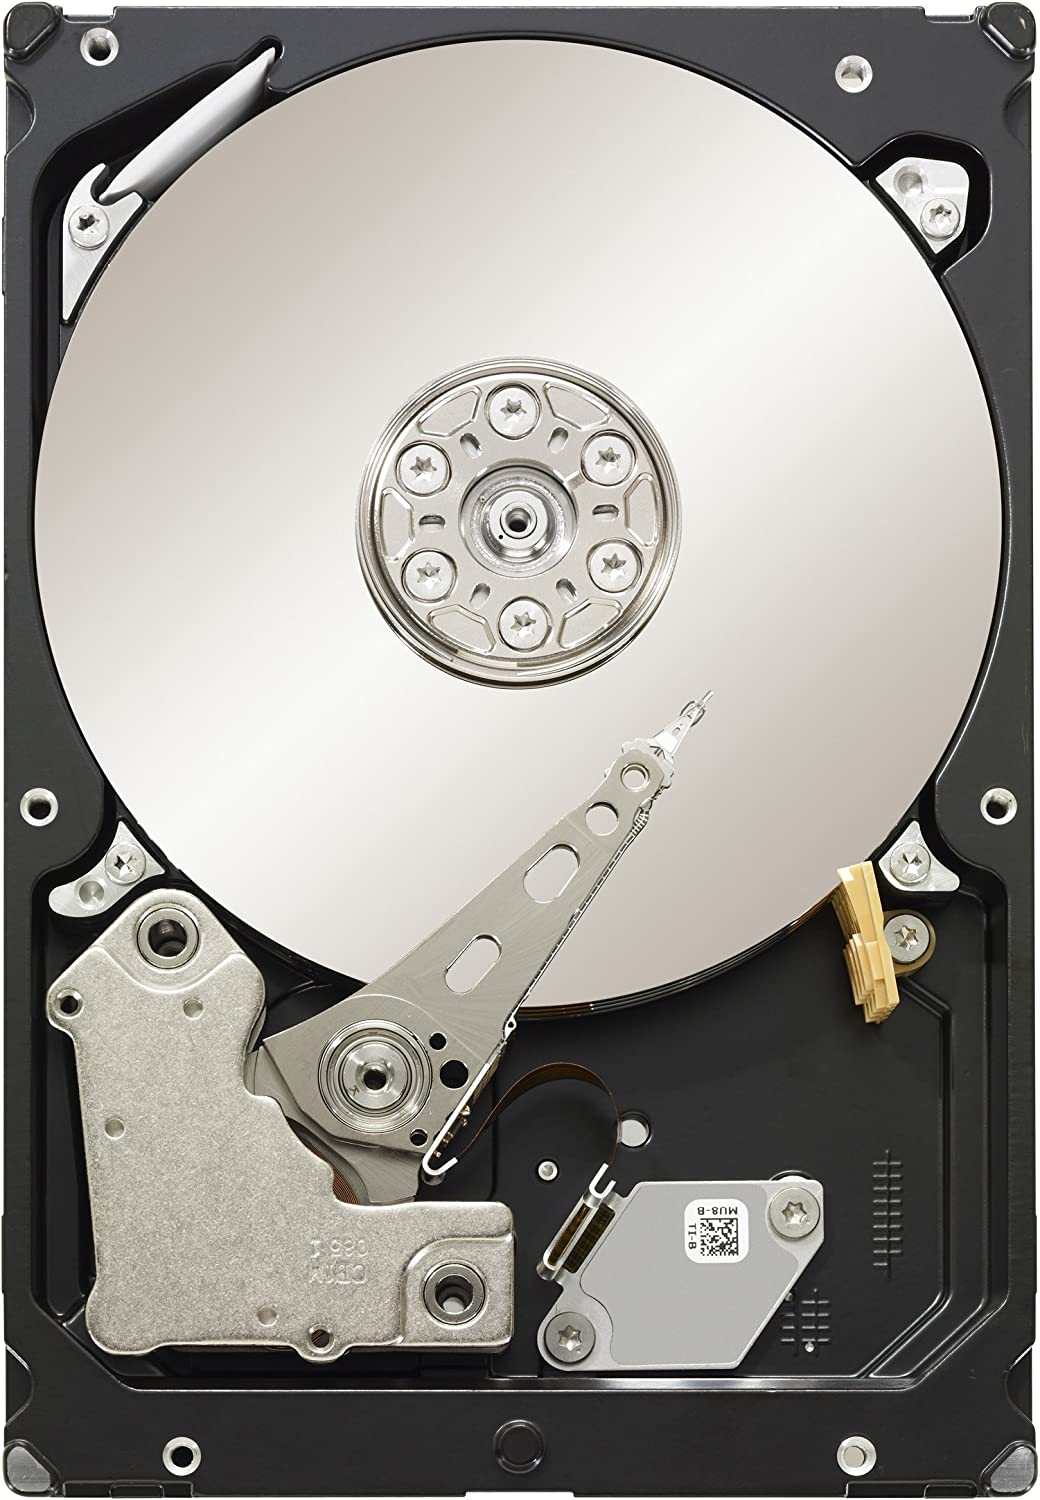 Seagate Constellation ES 1 TB 7200RPM SATA 2.0 3Gb/s 32 MB Cache 3.5 Inch Internal Hard Drive ST31000524NS - Bare Drive